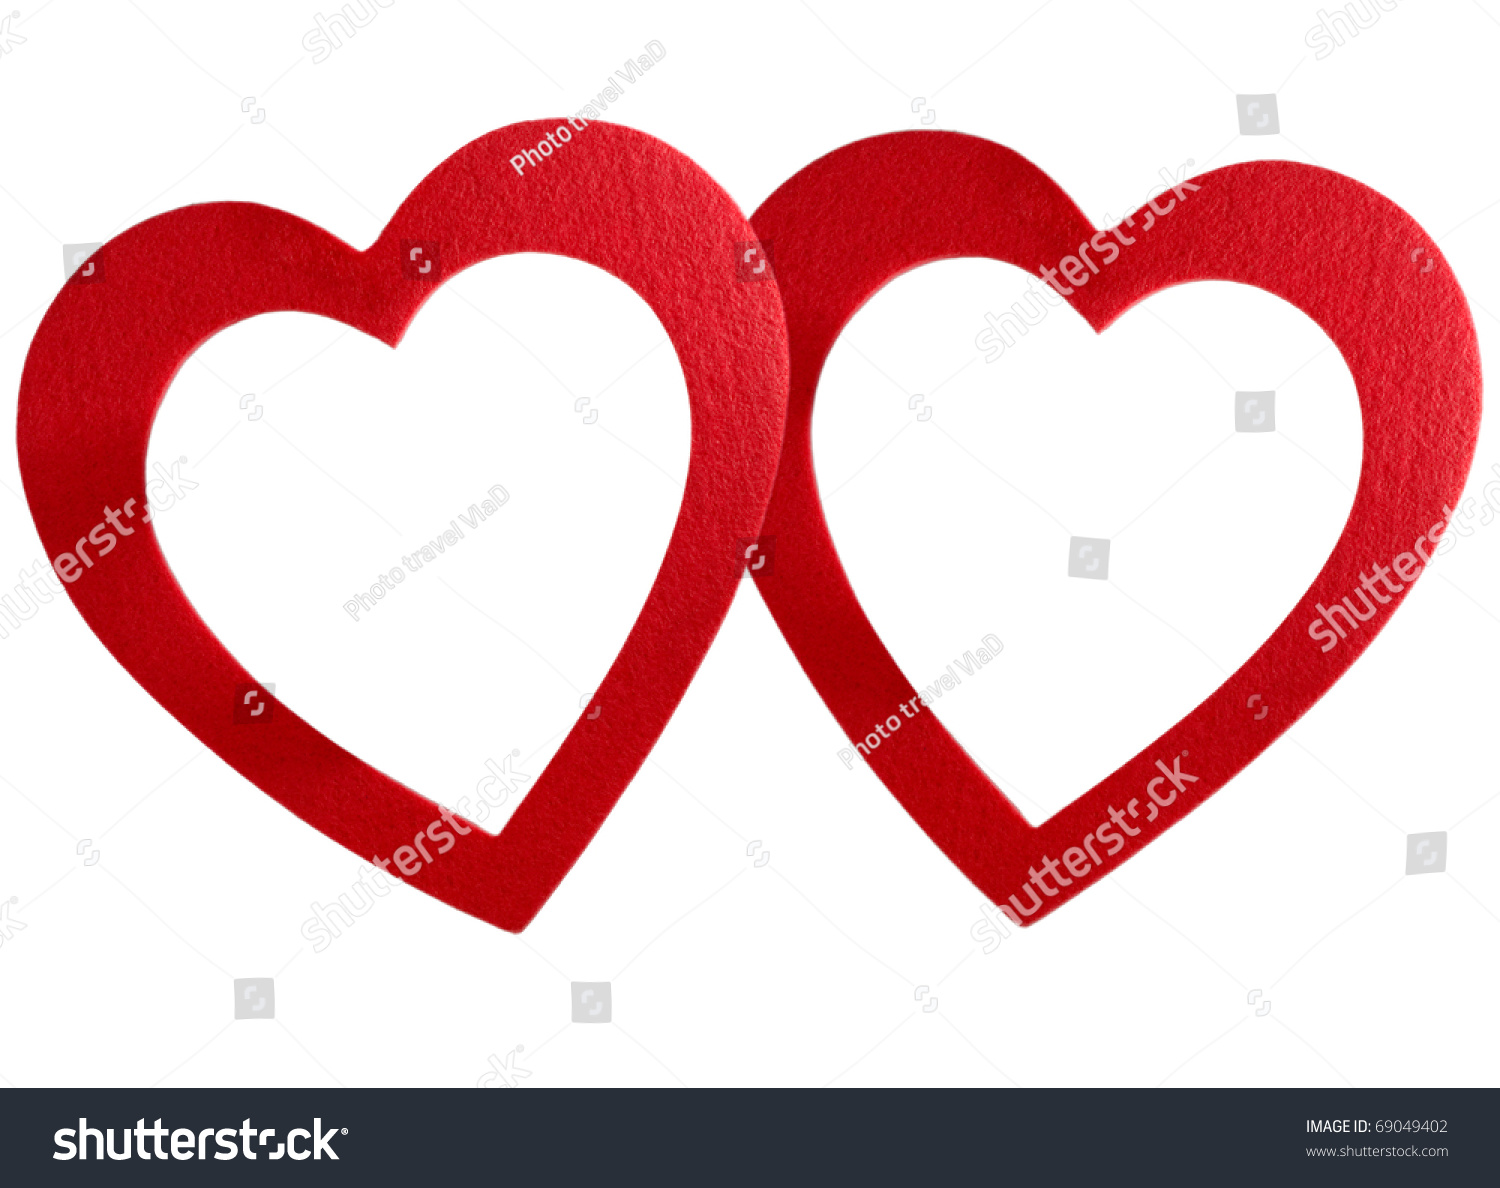 Big Red Heart Frame Isolated On Stock Photo (Edit Now) 69049402 ...